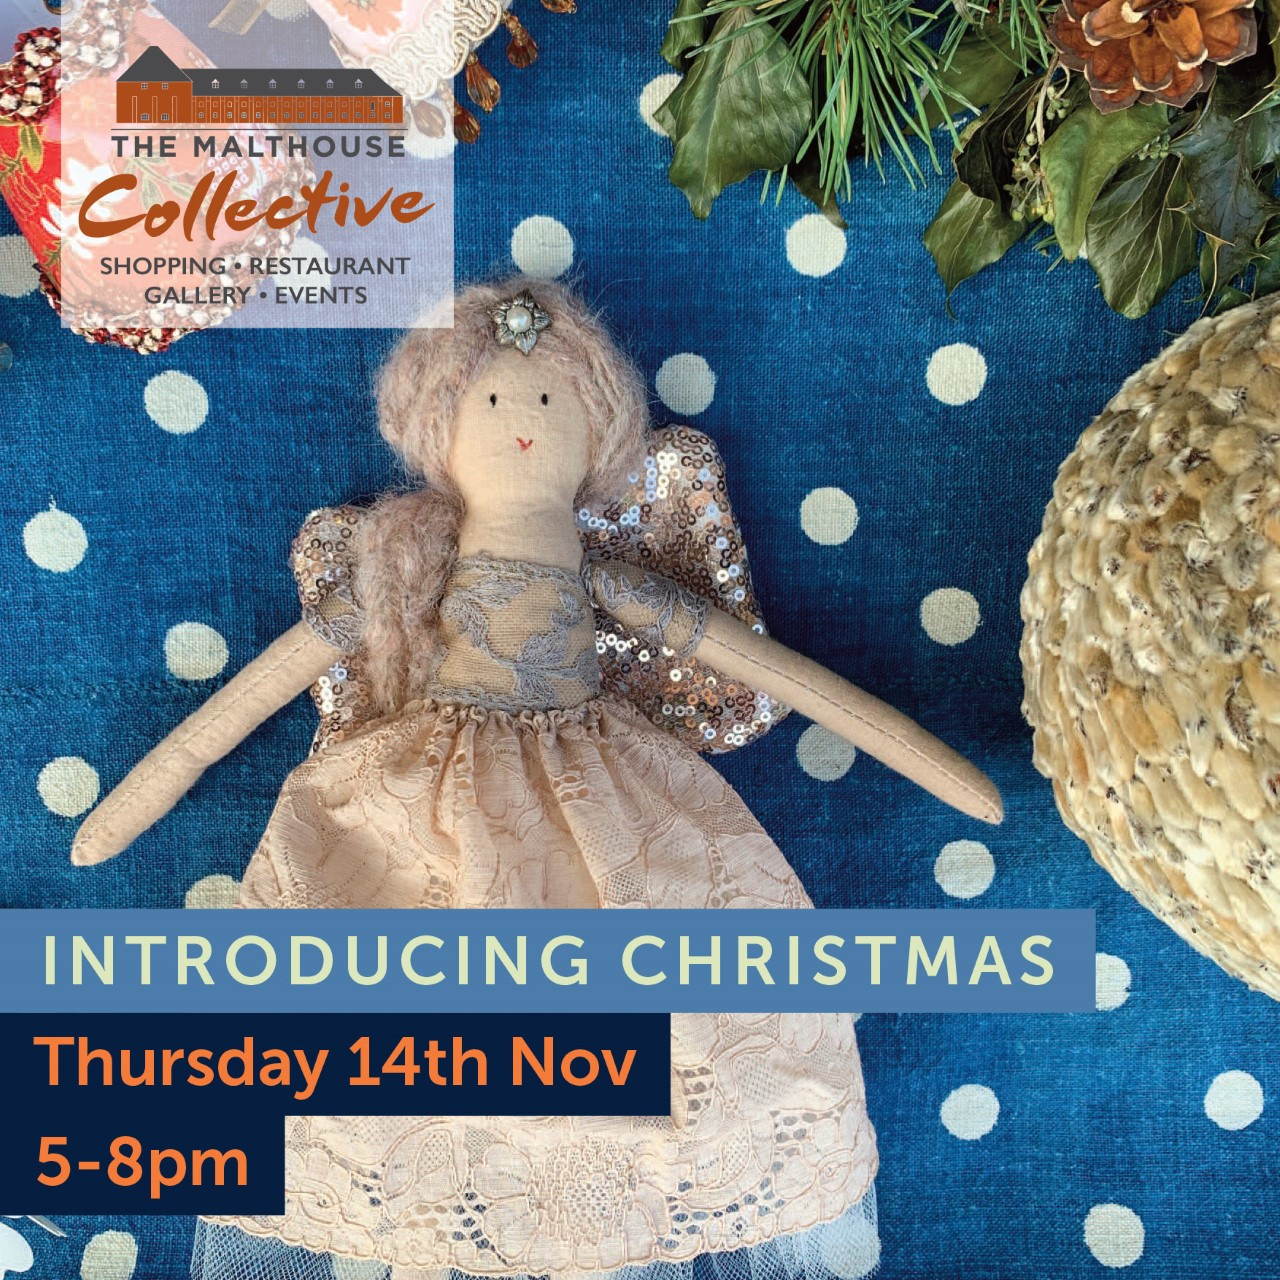 The Malthouse Collective's Introducing Christmas launch event